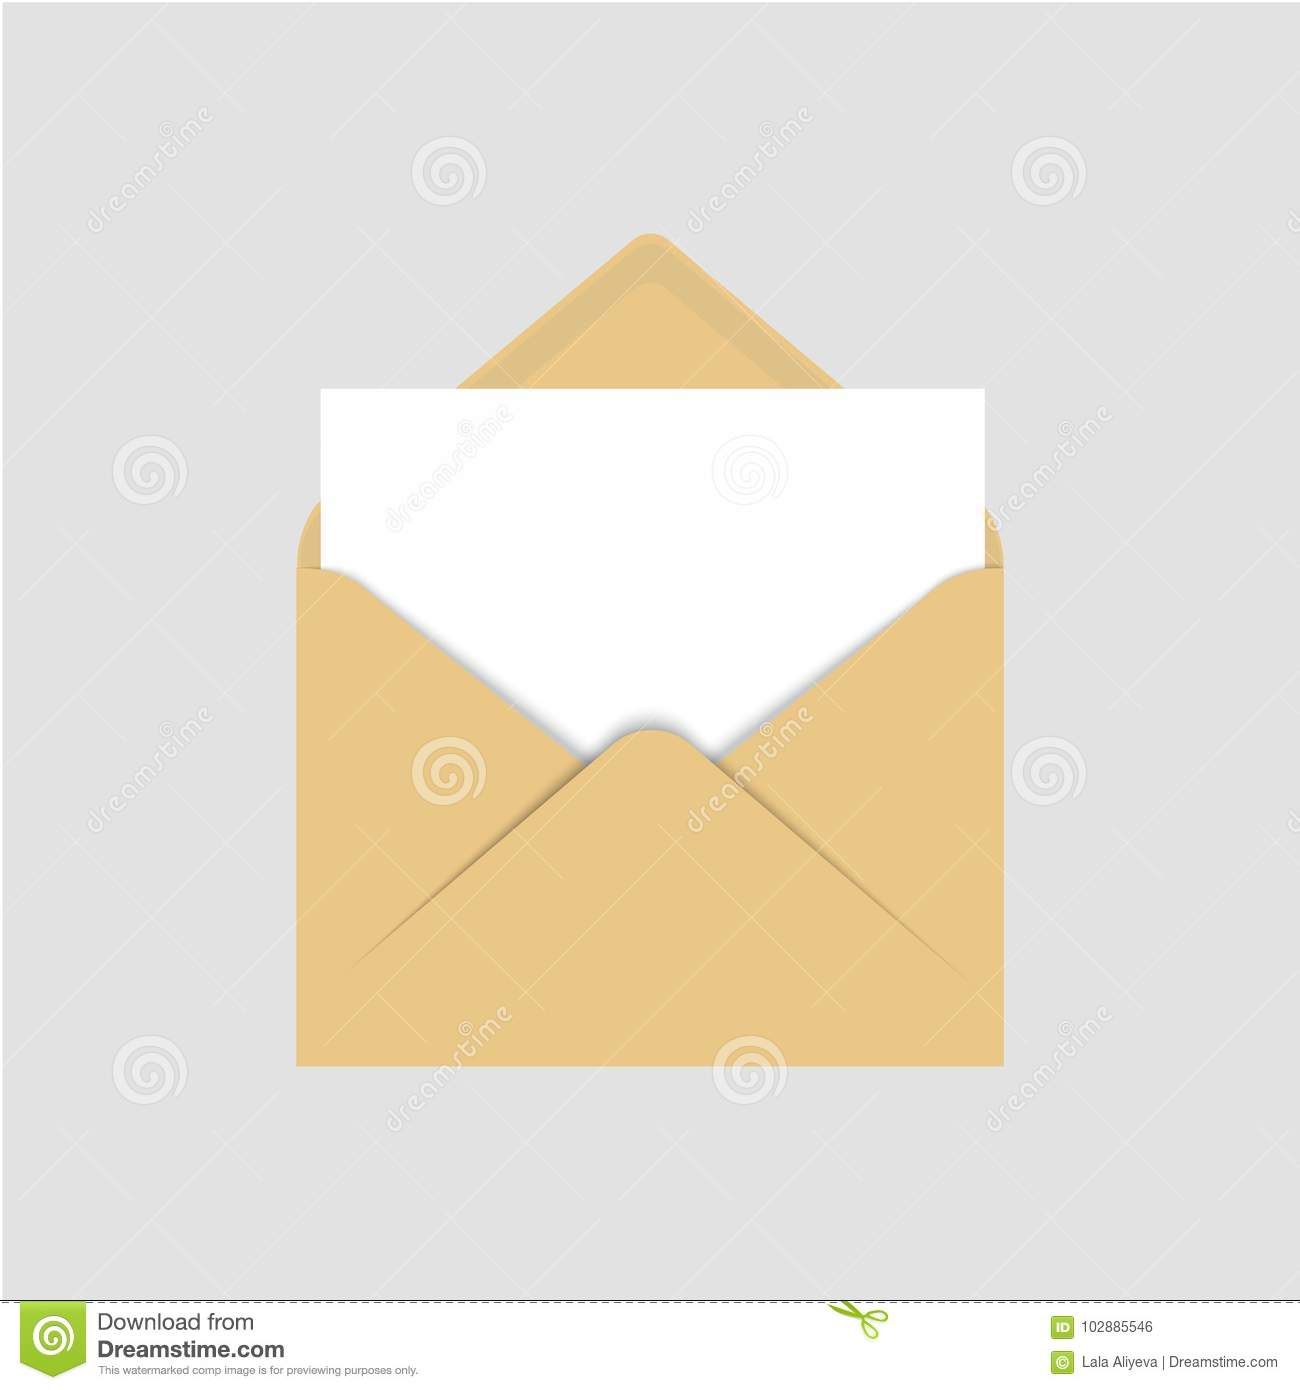 Realistic Blank Template Of Brown Paper Envelope With Empty White